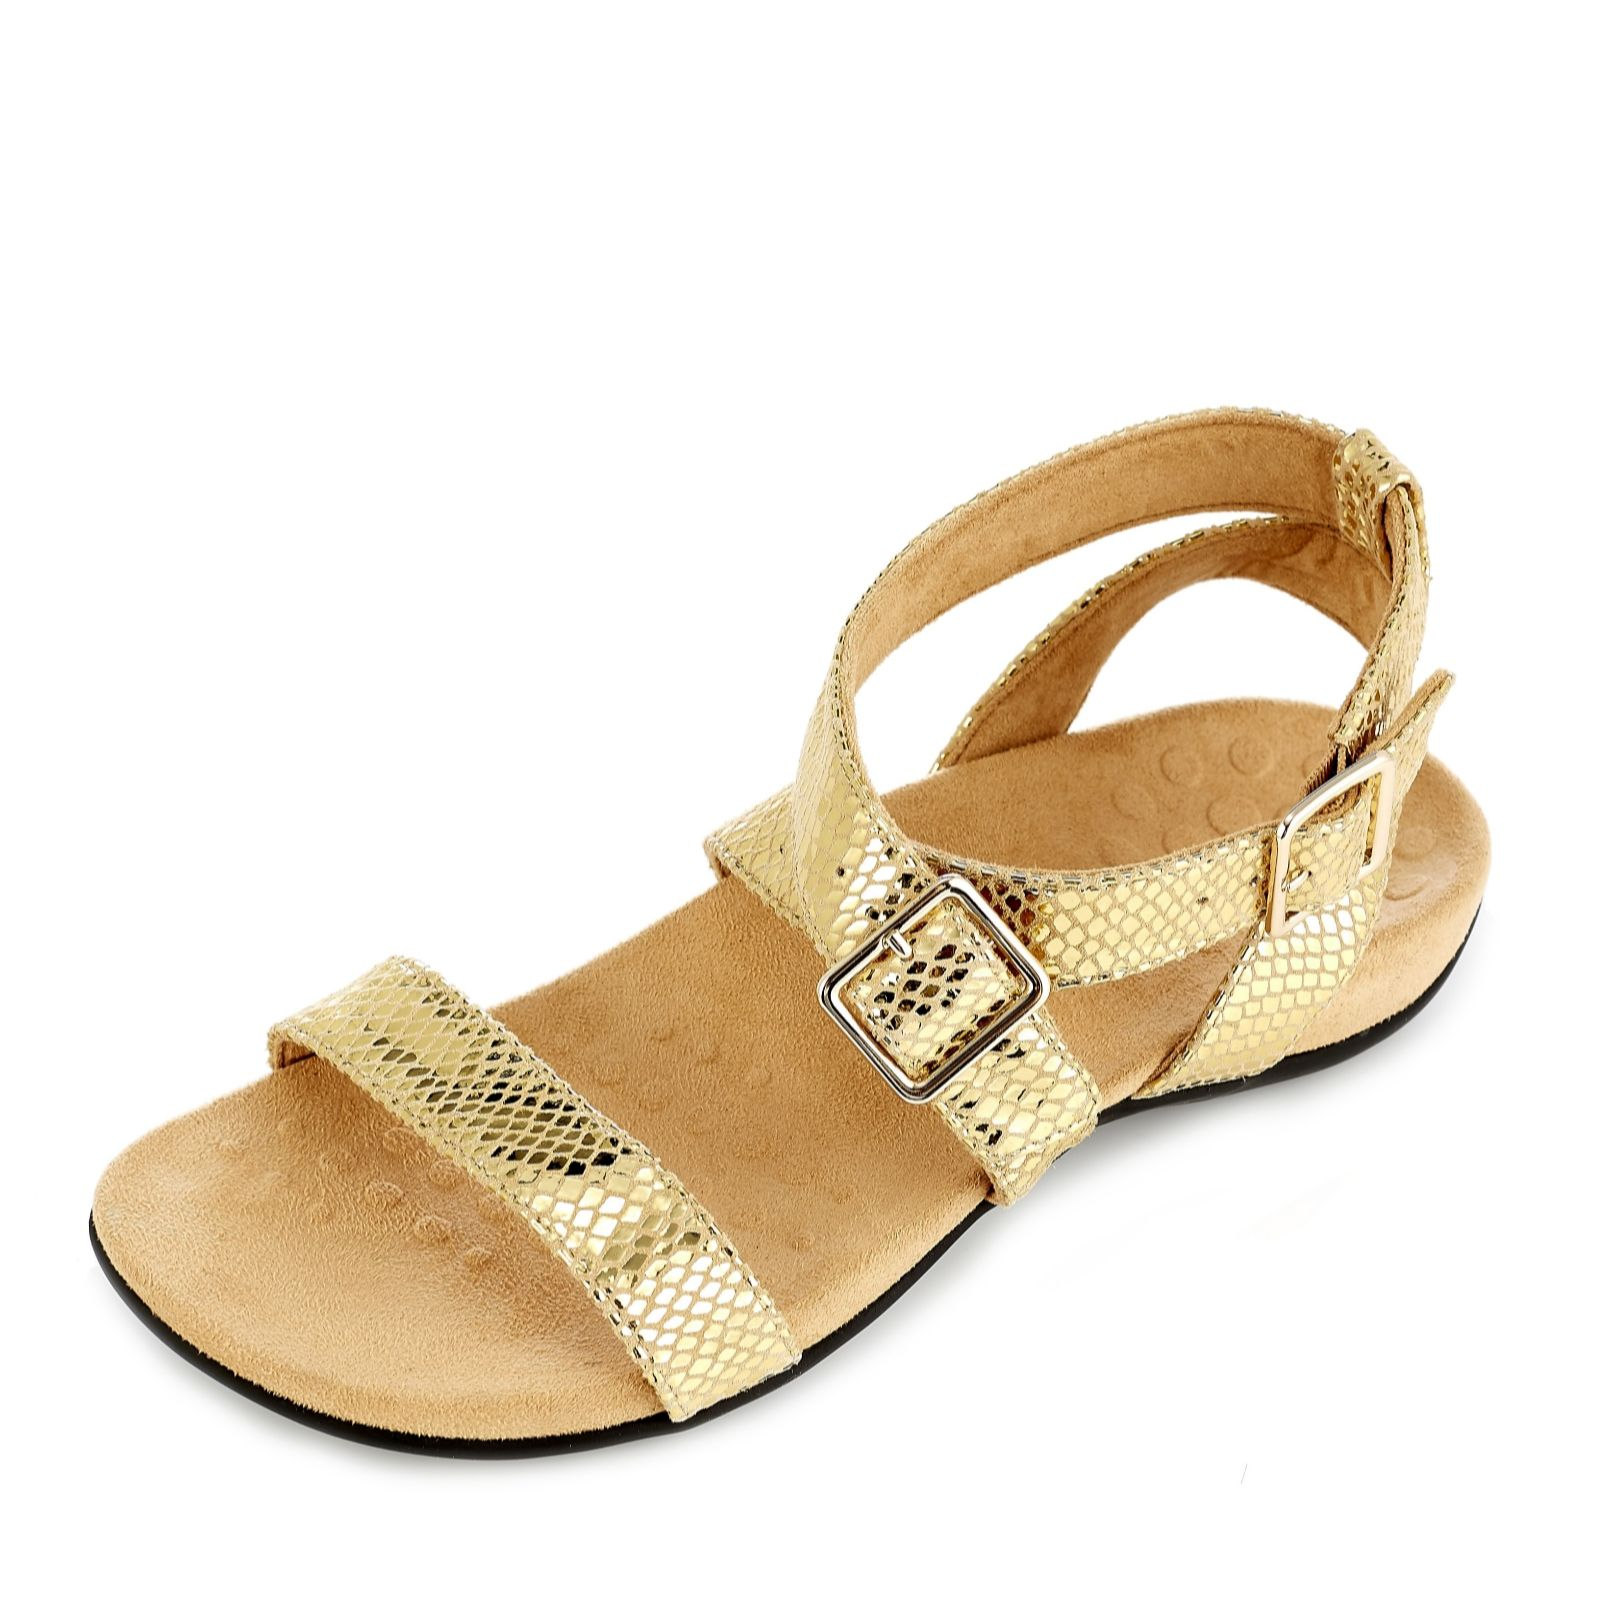 the best website for discount new arrive Vionic Orthotic Elnora Ankle Strap Sandals w/ FMT Technology ...